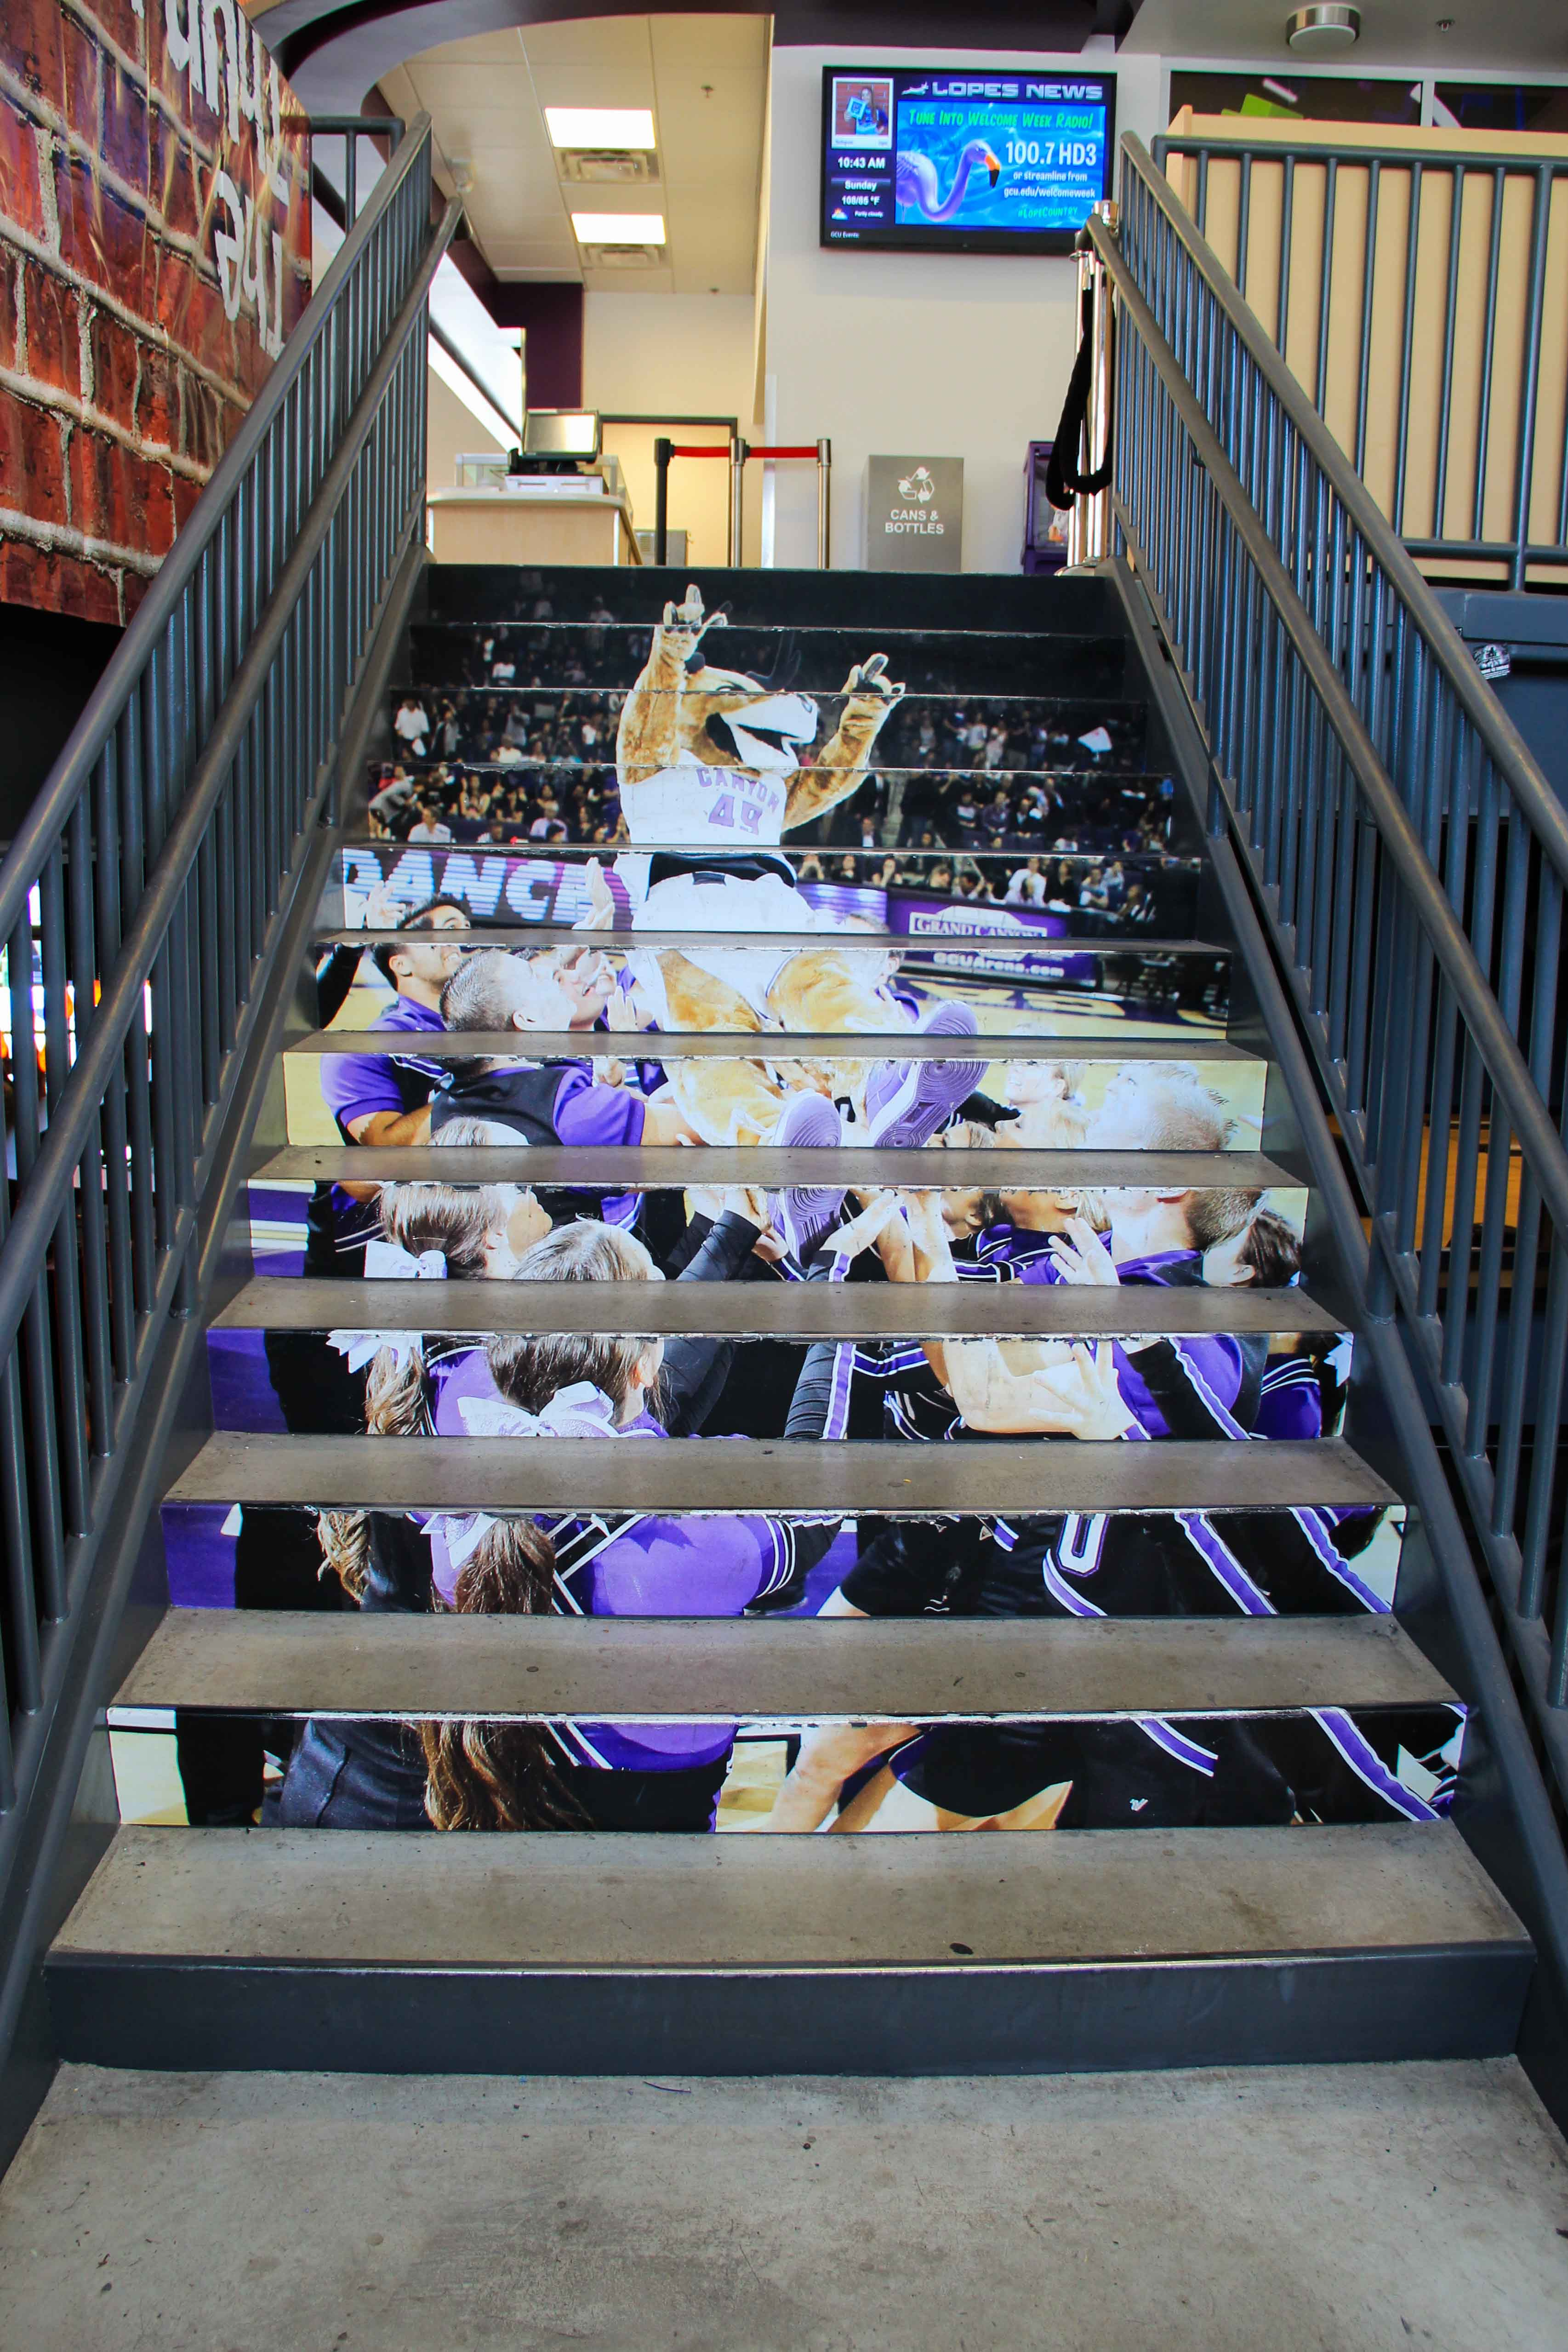 Environmental graphics on stairs at GCU